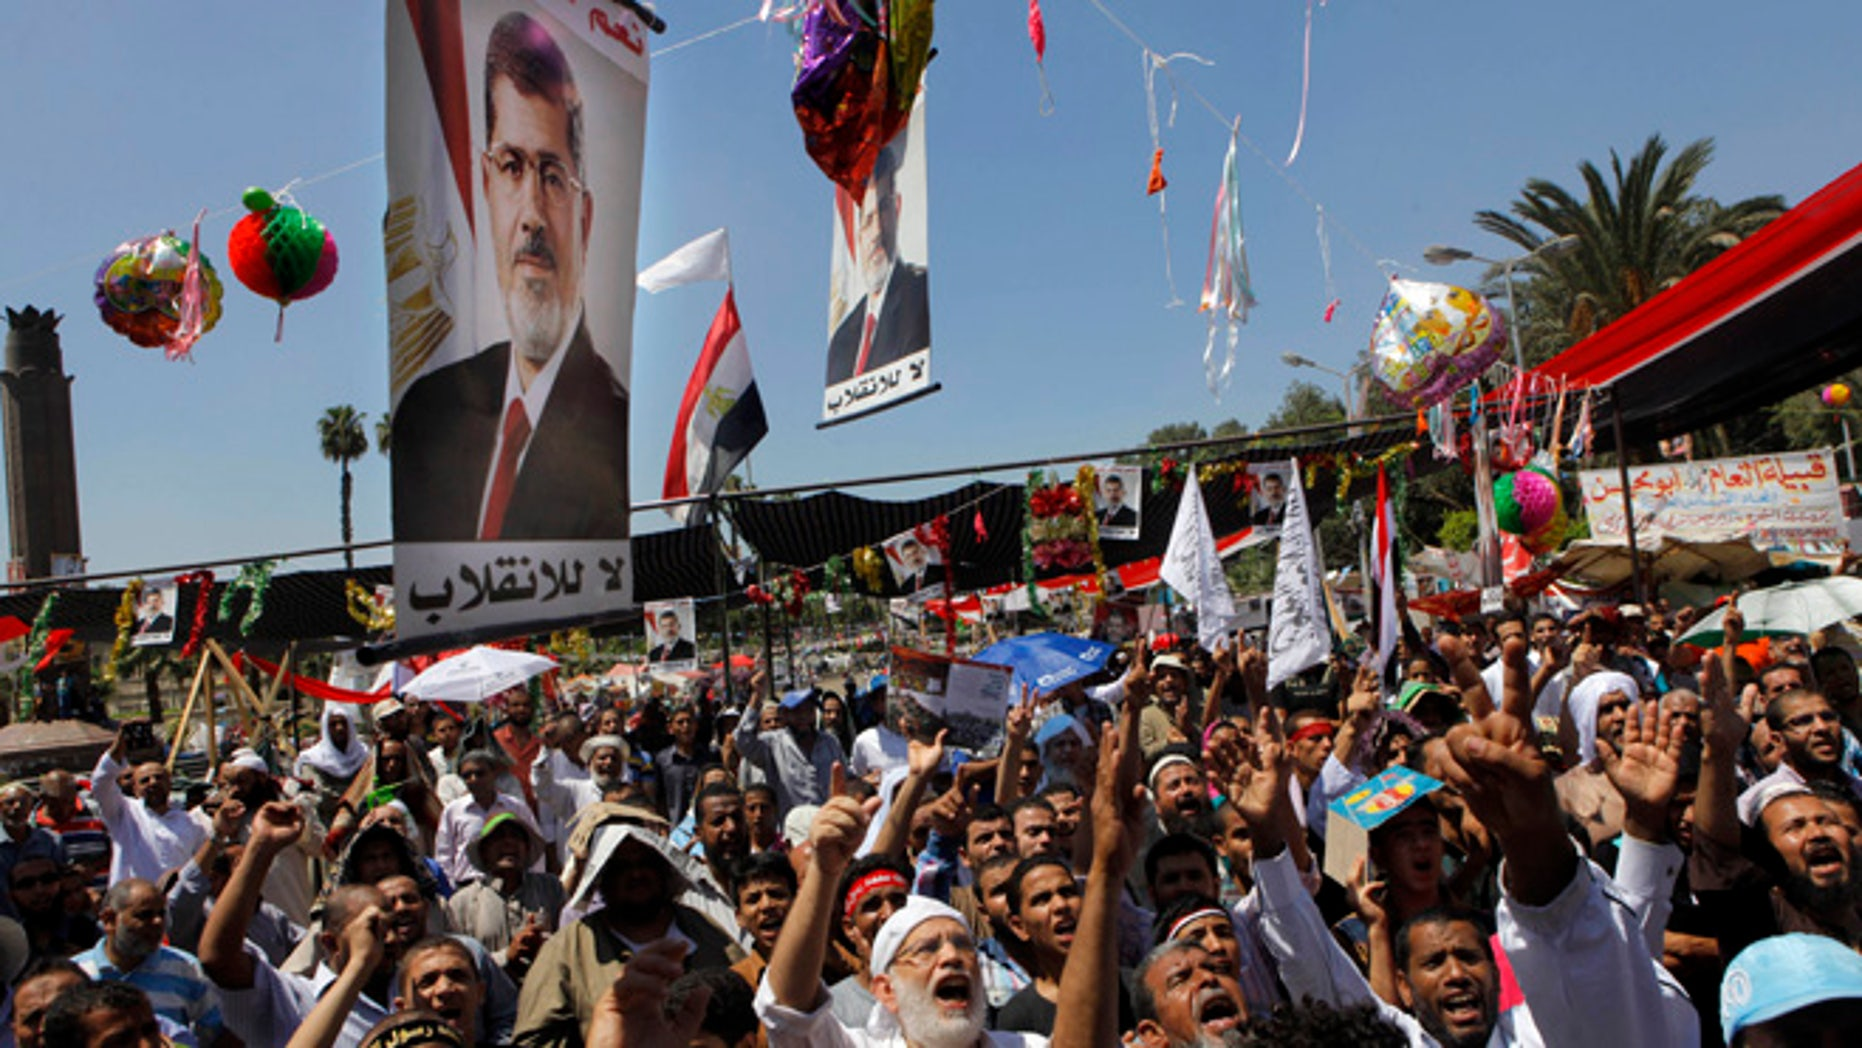 Supporters of Egypt's ousted President Mohammed Morsi shout slogans under his posters following Friday prayers in Nahda square, where protesters installed their camp near Cairo University in Giza, southwest of Cairo, Egypt, Friday, Aug. 9, 2013.